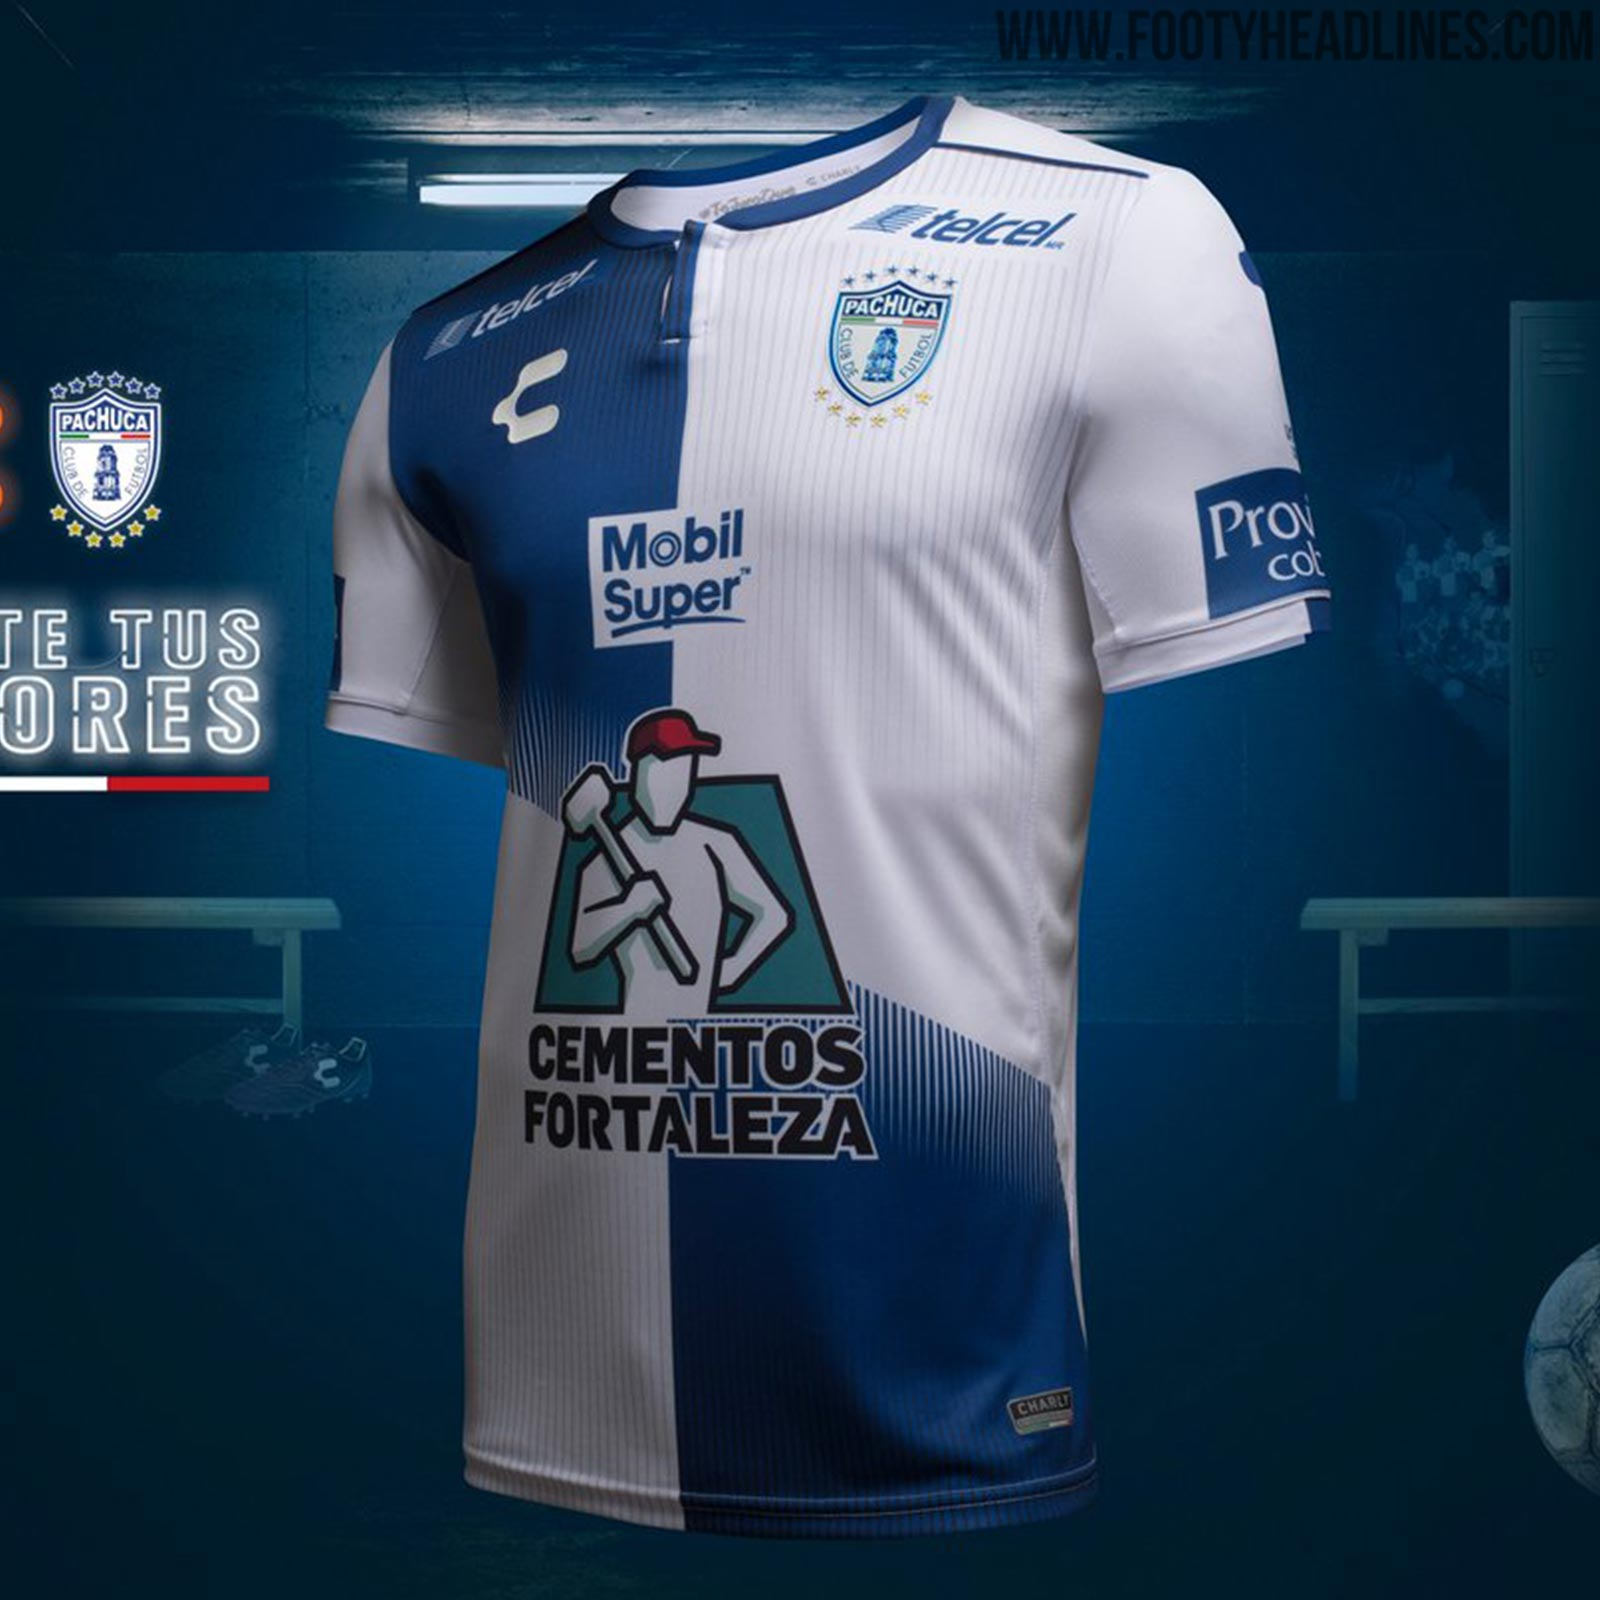 2018-19 Liga MX Kits Overview - All Mexican League 18-19 Jerseys